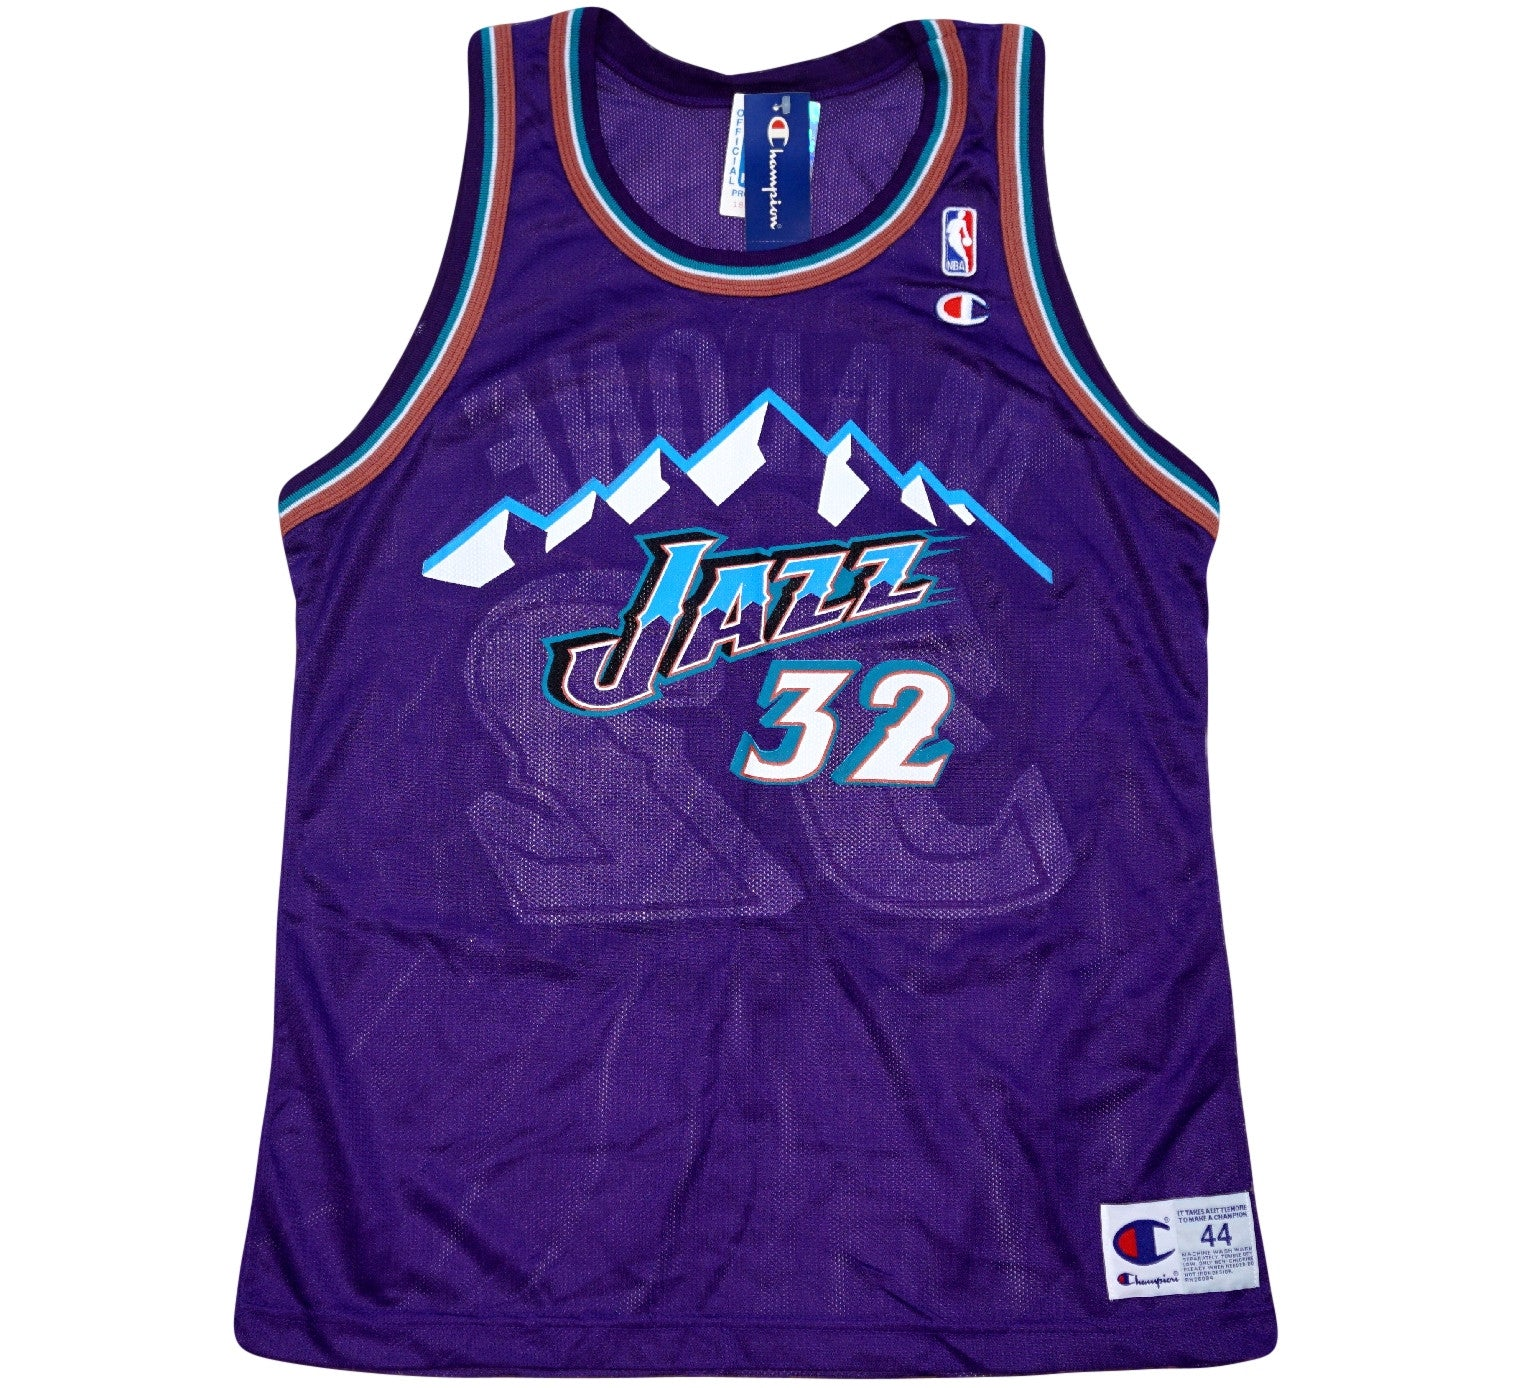 Karl Malone Jazz 90's Jersey - And Still